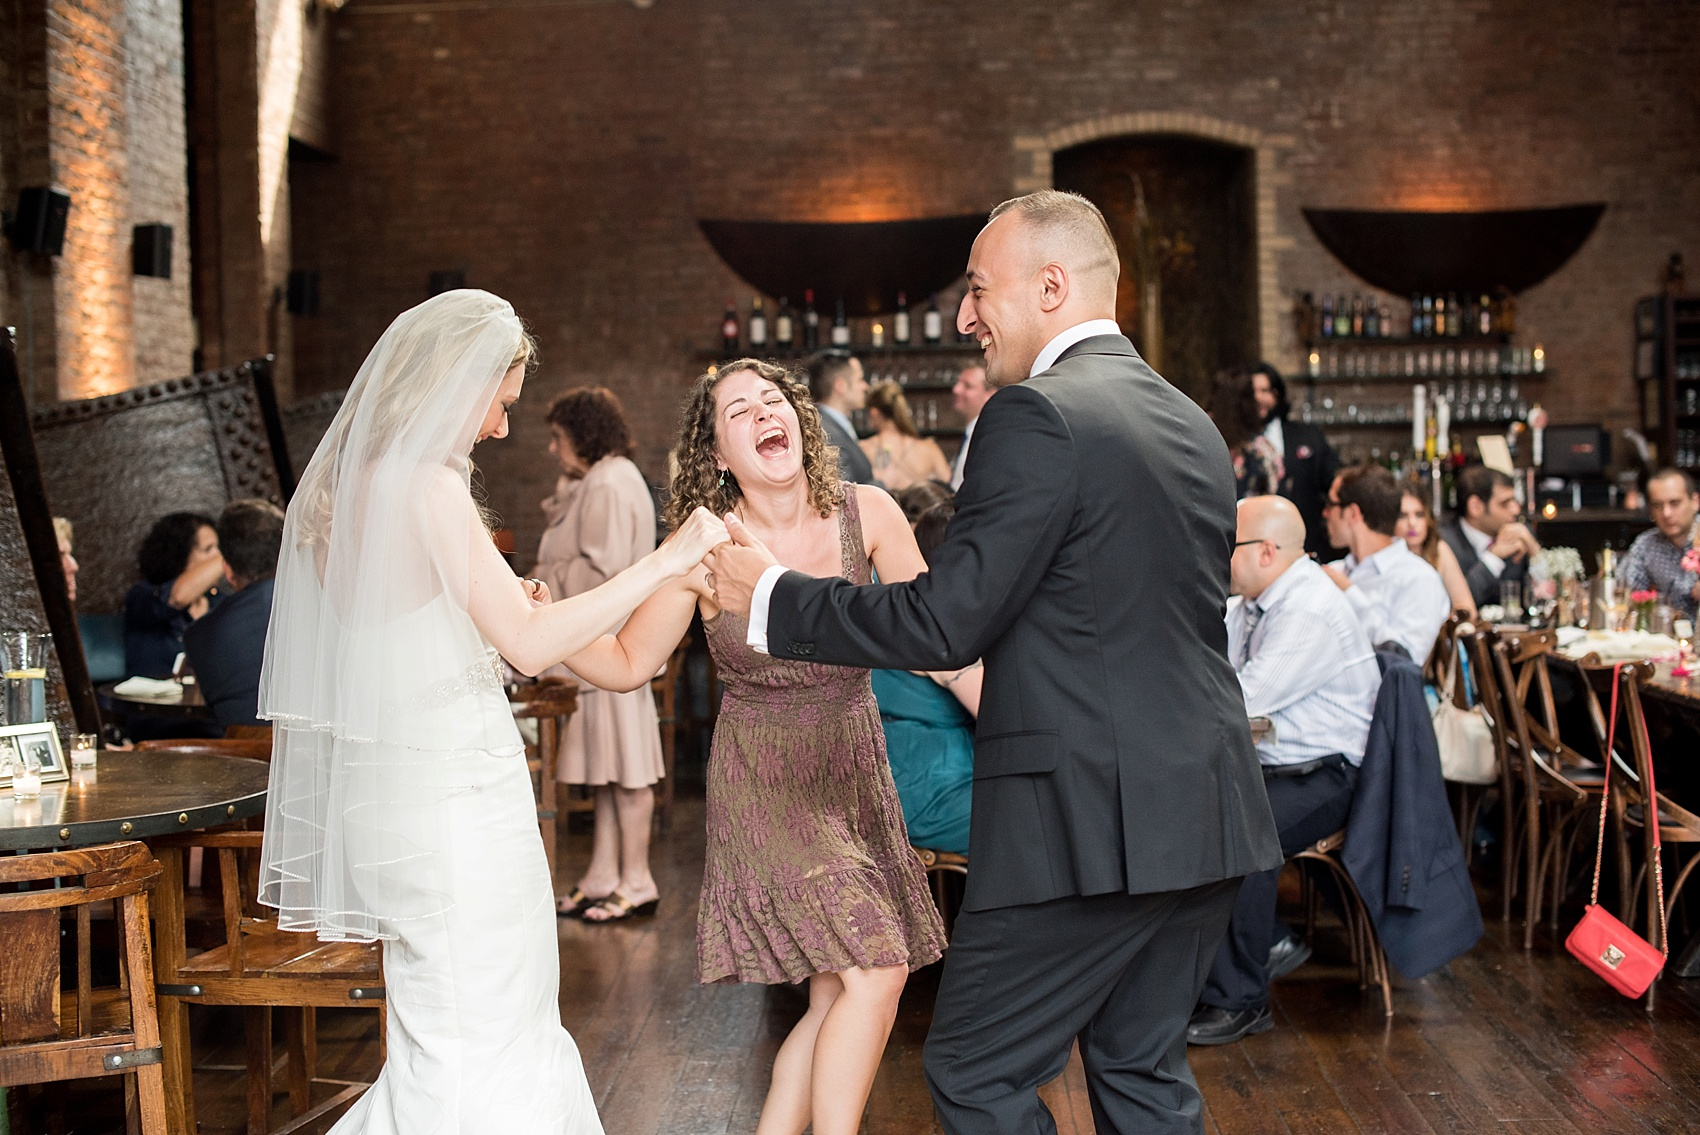 Rustic romantic My Moon Brooklyn, Williamsburg NYC, intimate wedding. First dance with the bride and groom. Photos by Mikkel Paige Photography.